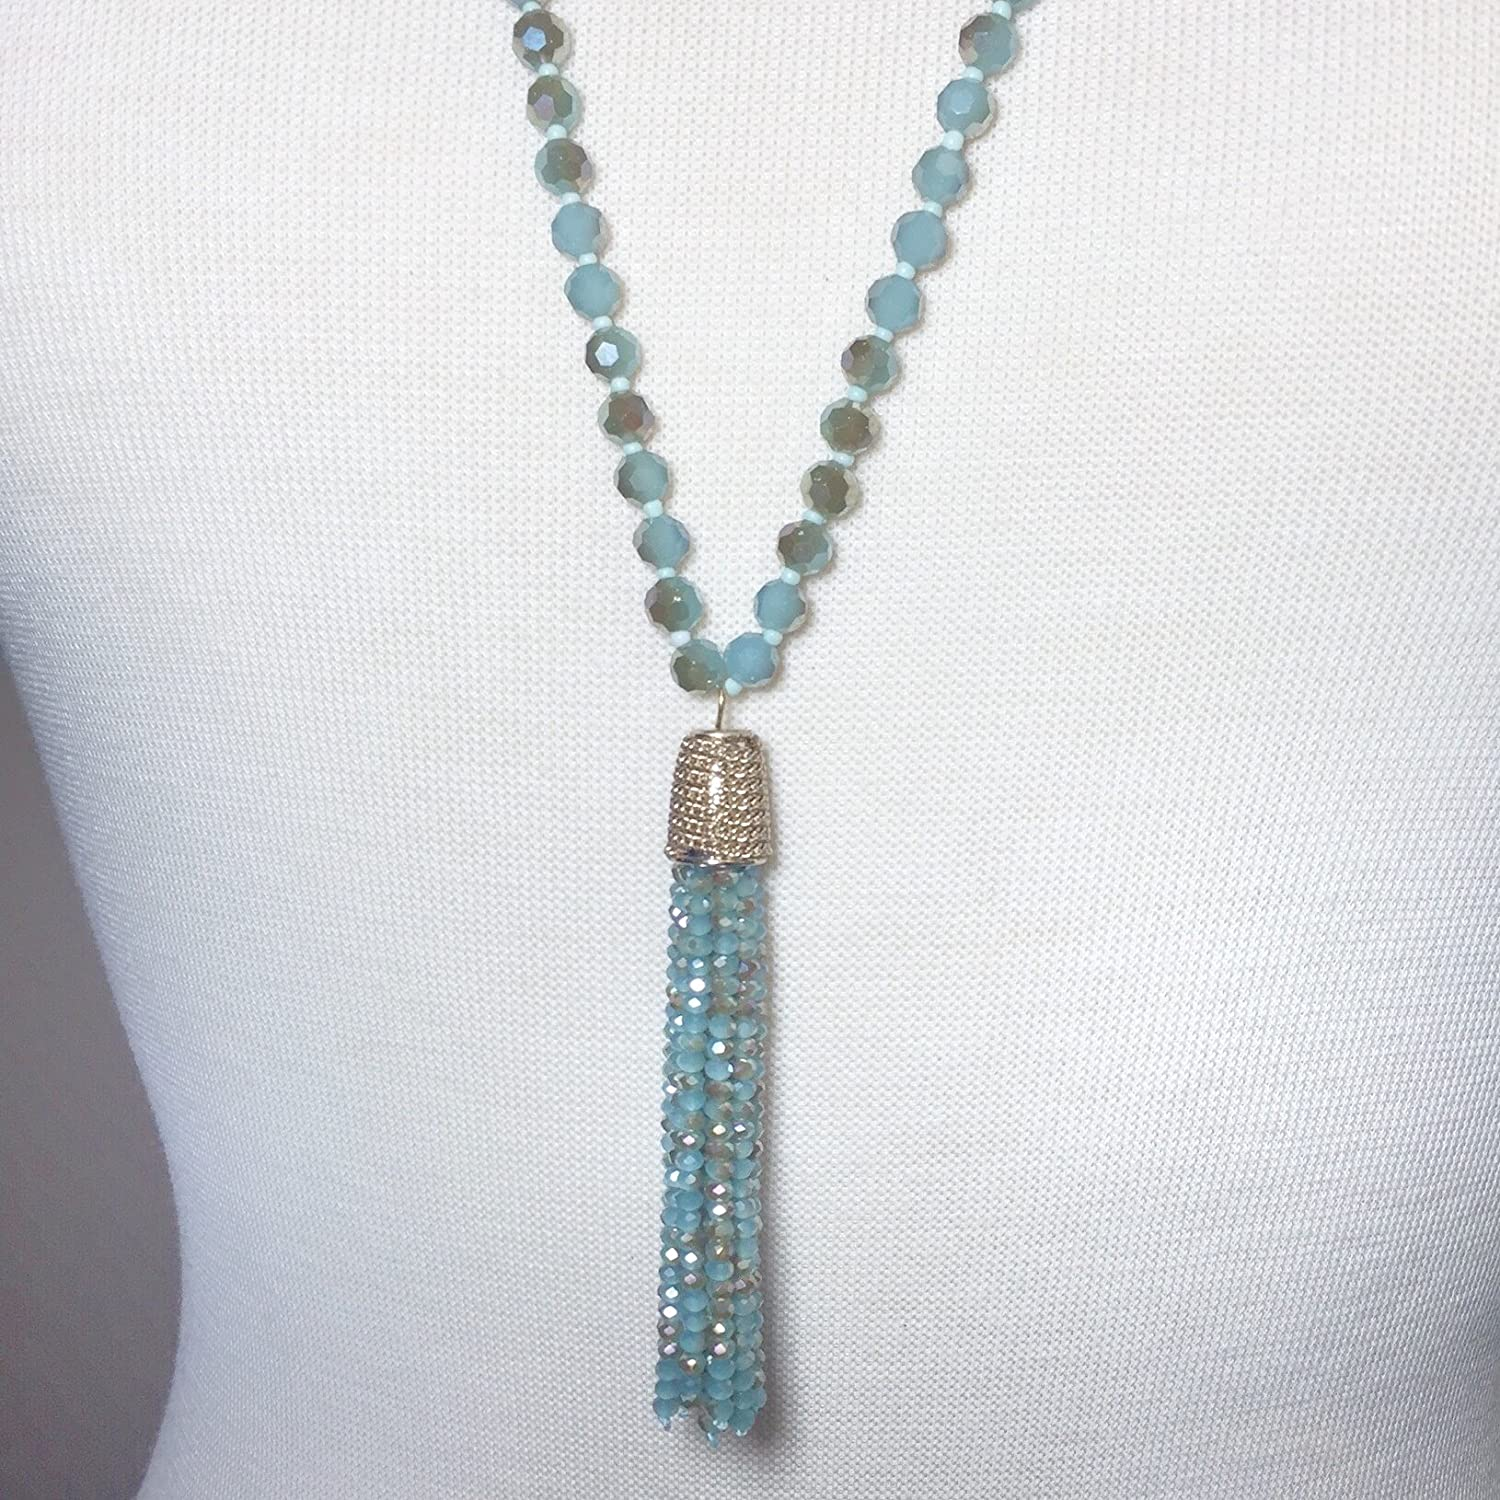 Long Glass Beaded Tassel Fringe Boutique Style Necklace Gypsy Jewels A1